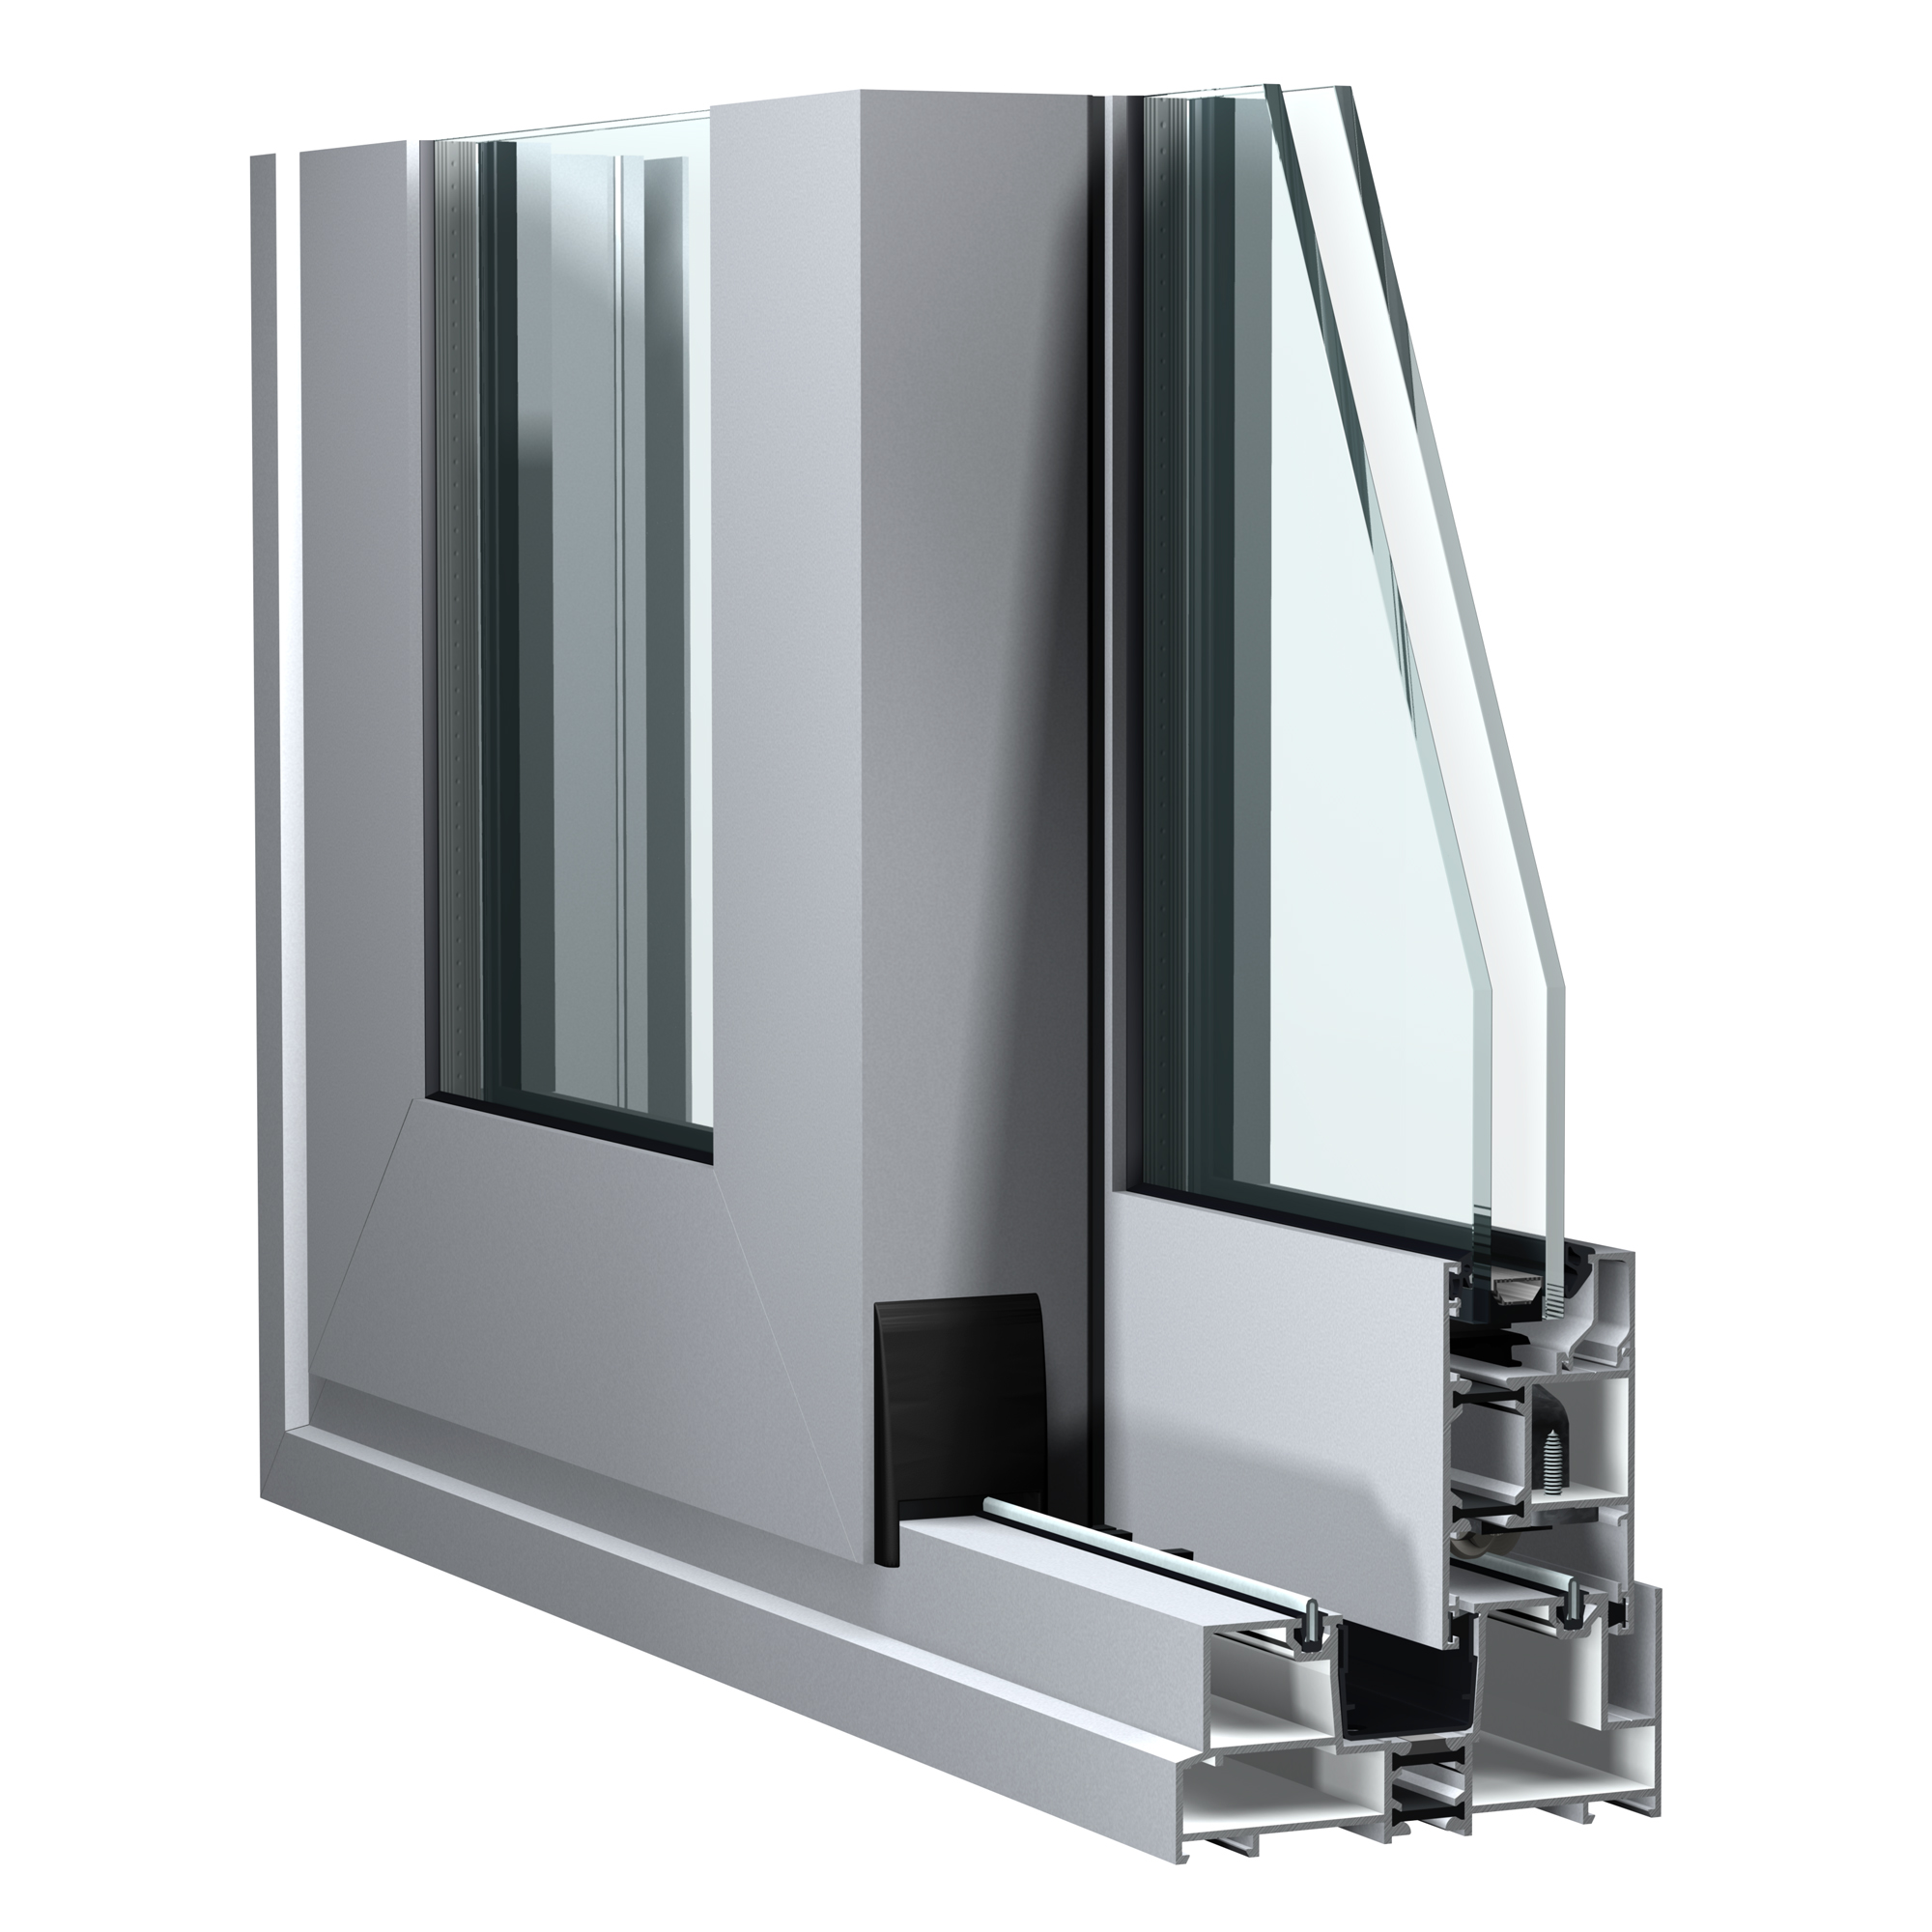 C125 sliding aluminium door system from Sapa